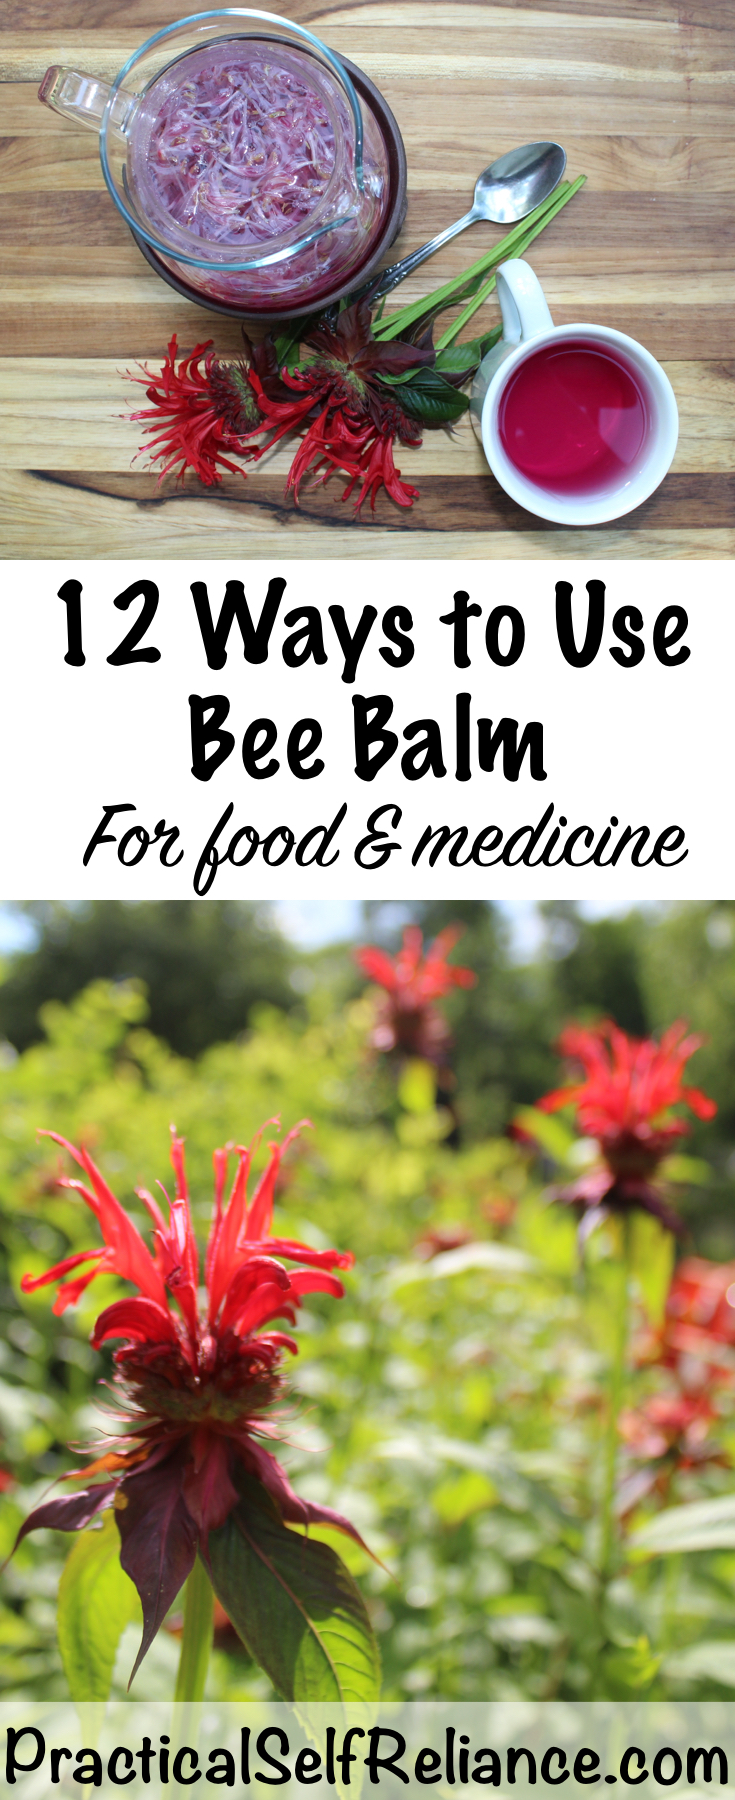 12 Ways to Use Bee Balm for Food & Medicine